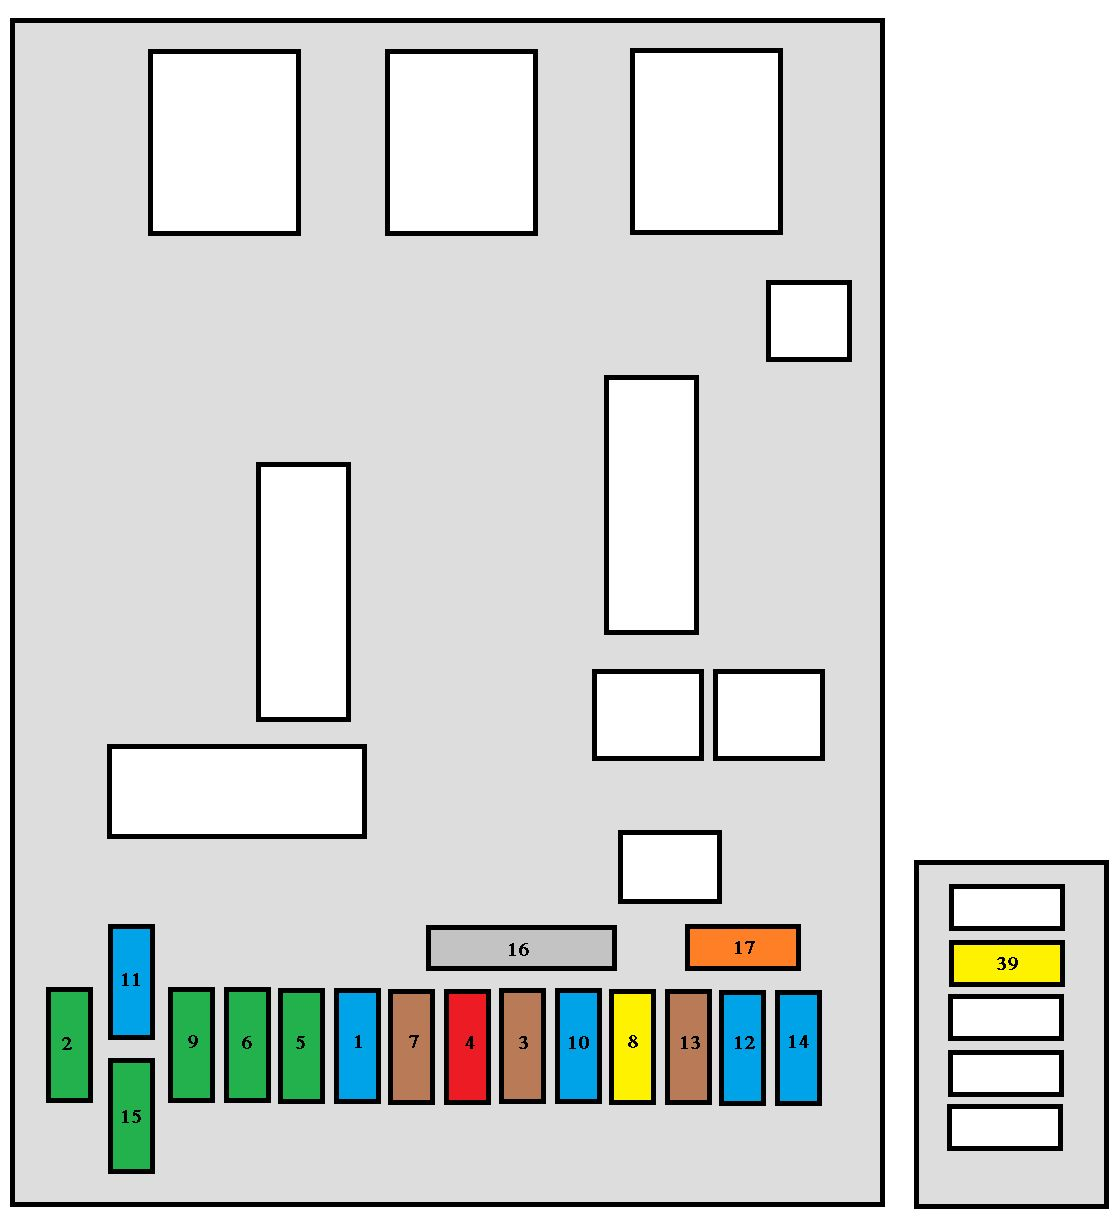 peugeot expert fuse box diagram wiring library Fuse Box Replacement peugeot 307 (2005 2008) fuse box diagram auto genius fiat doblo fuse box diagram